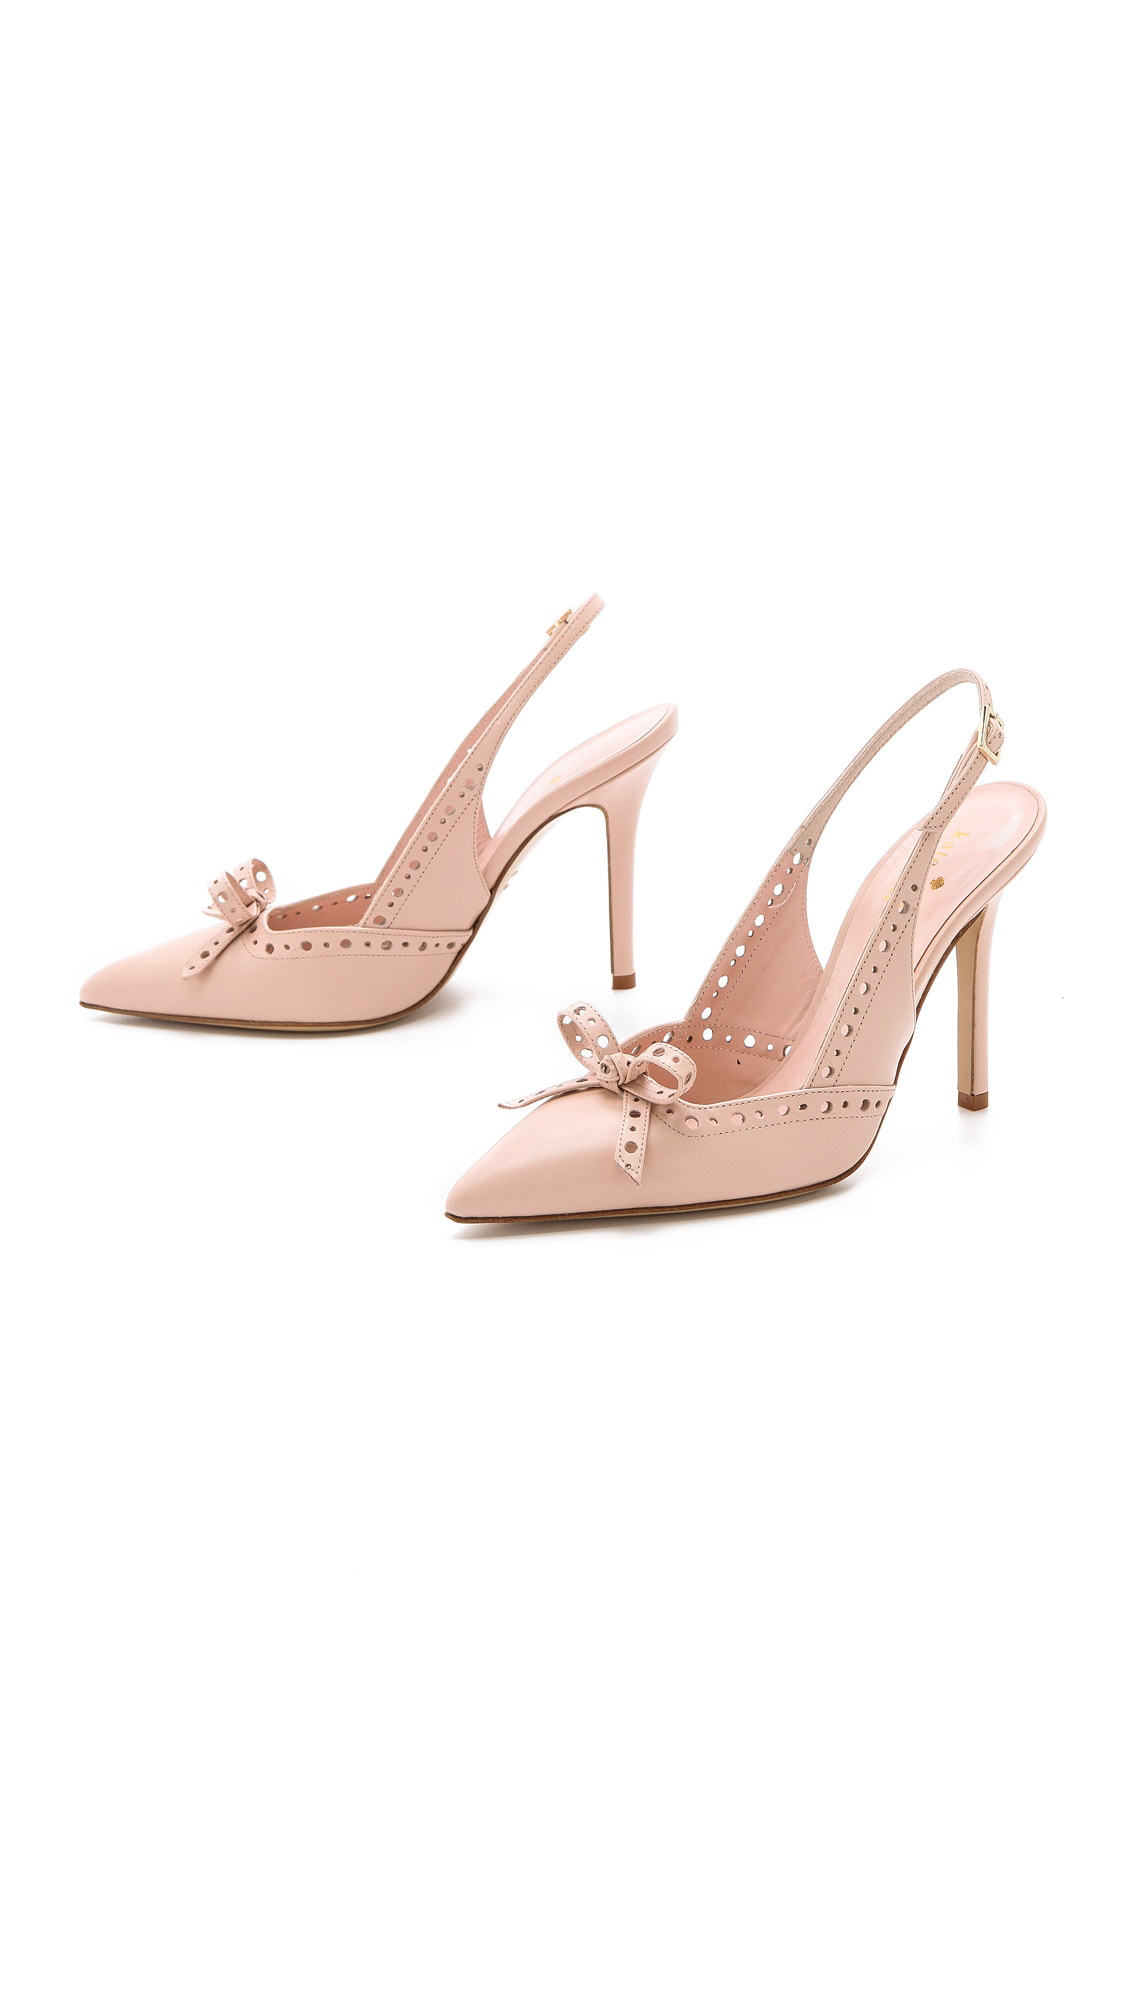 Kate Spade New York Lali Bow Slingback Pumps Pale Pink In